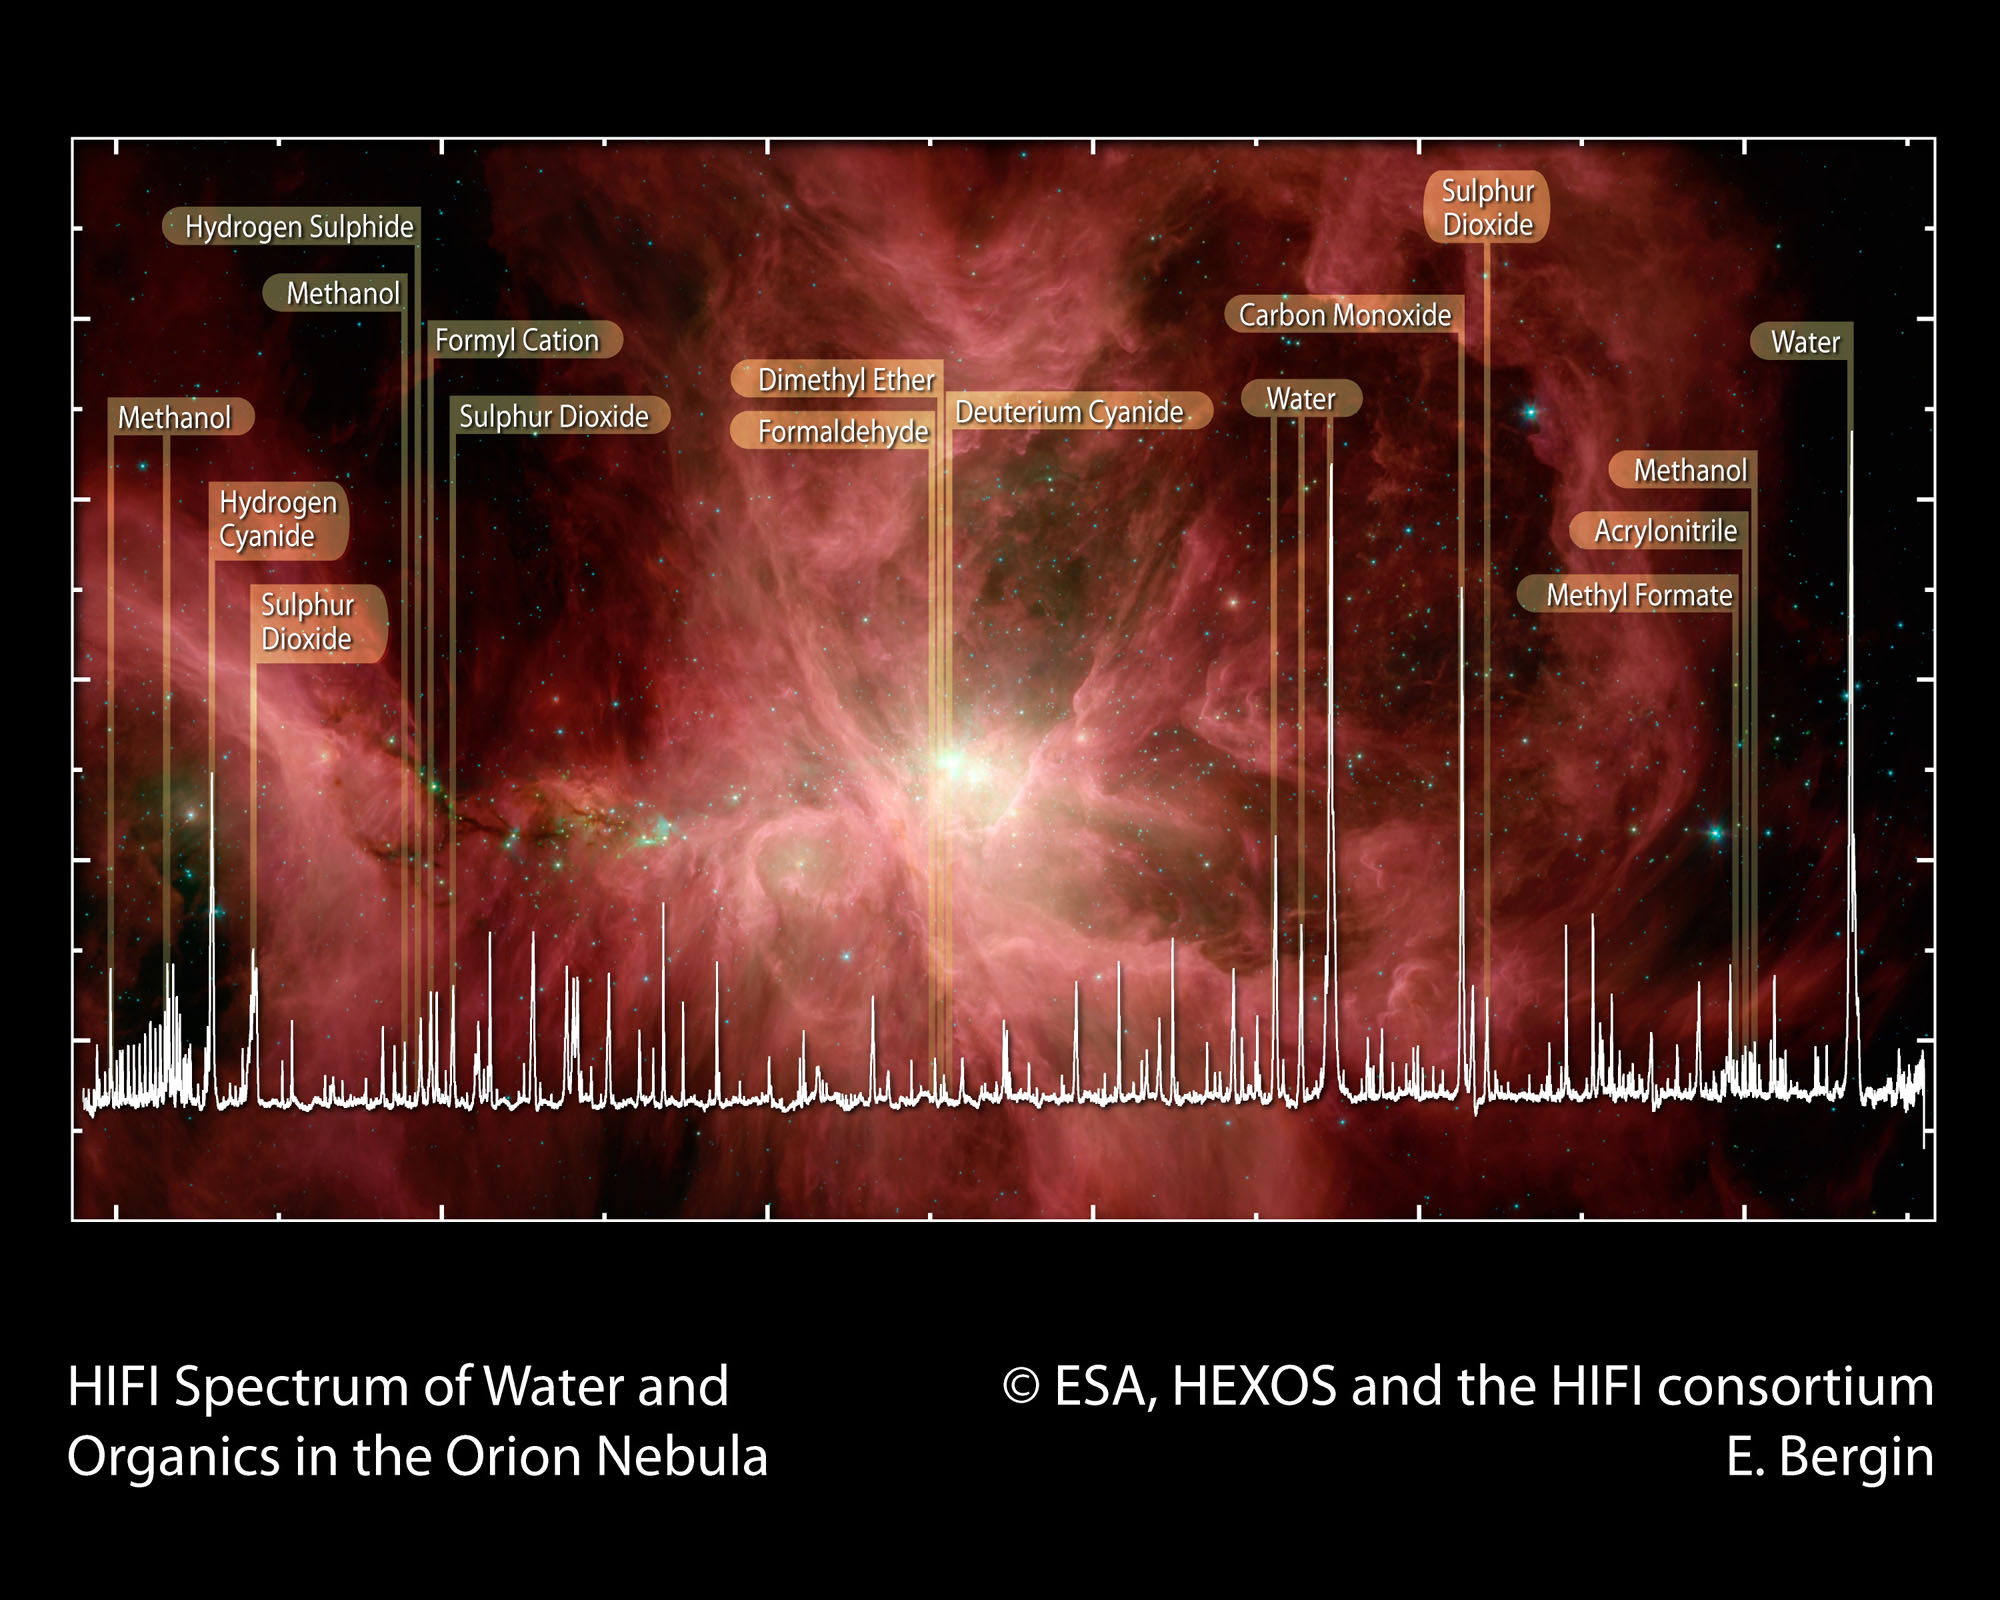 HIFI spectral scan of Orion